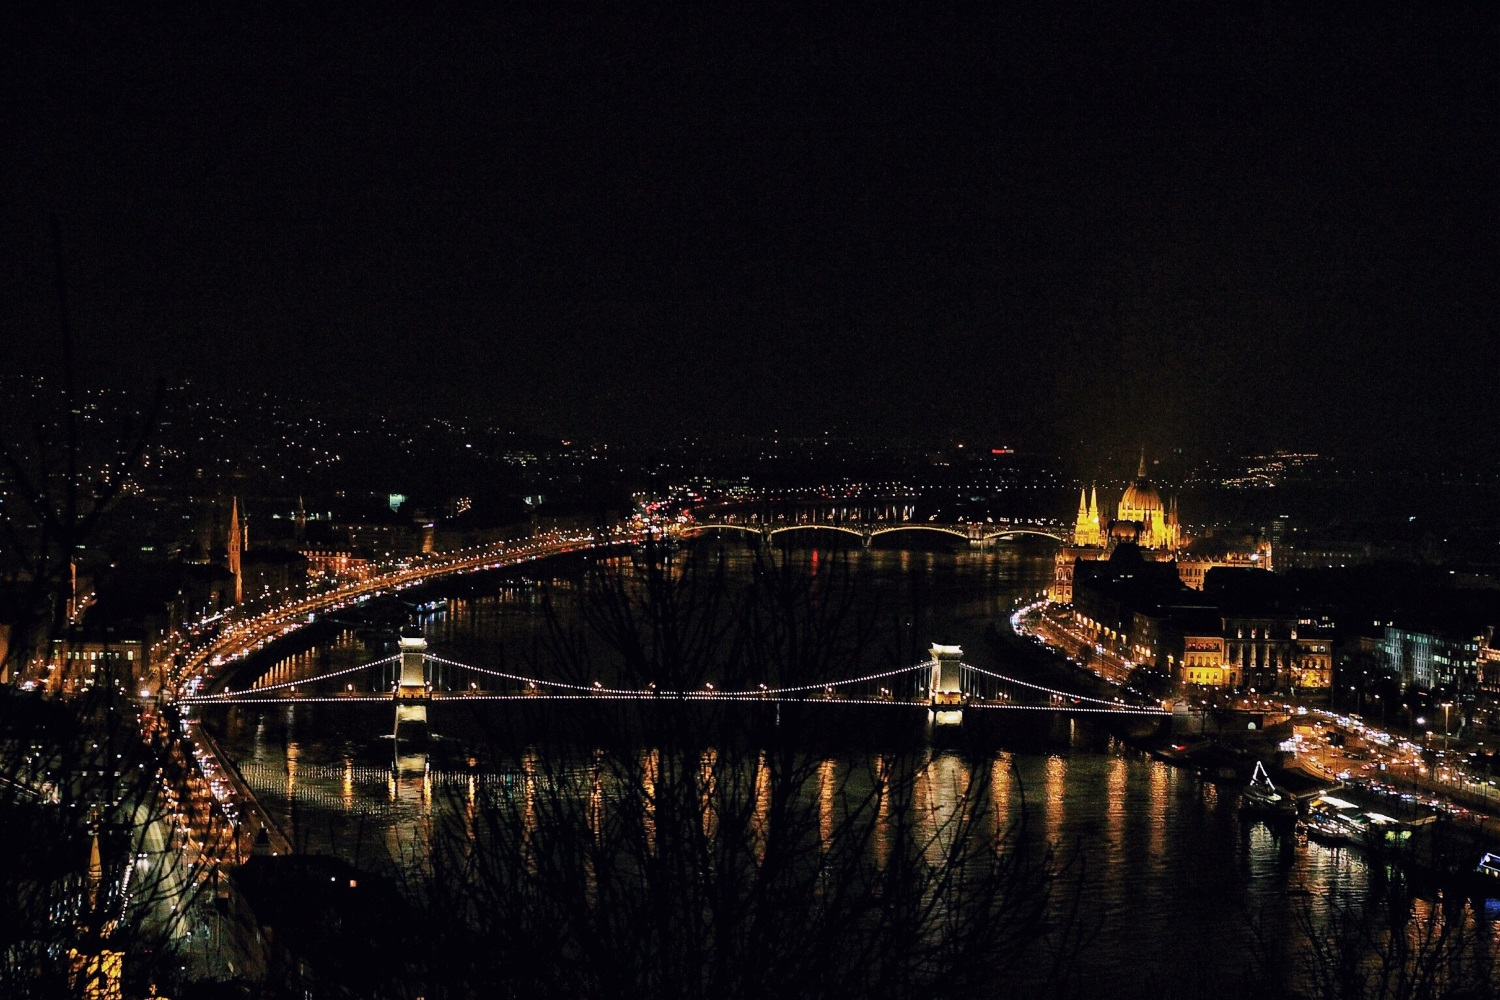 lifesthayle-budapest-bridges-at-night.jpg